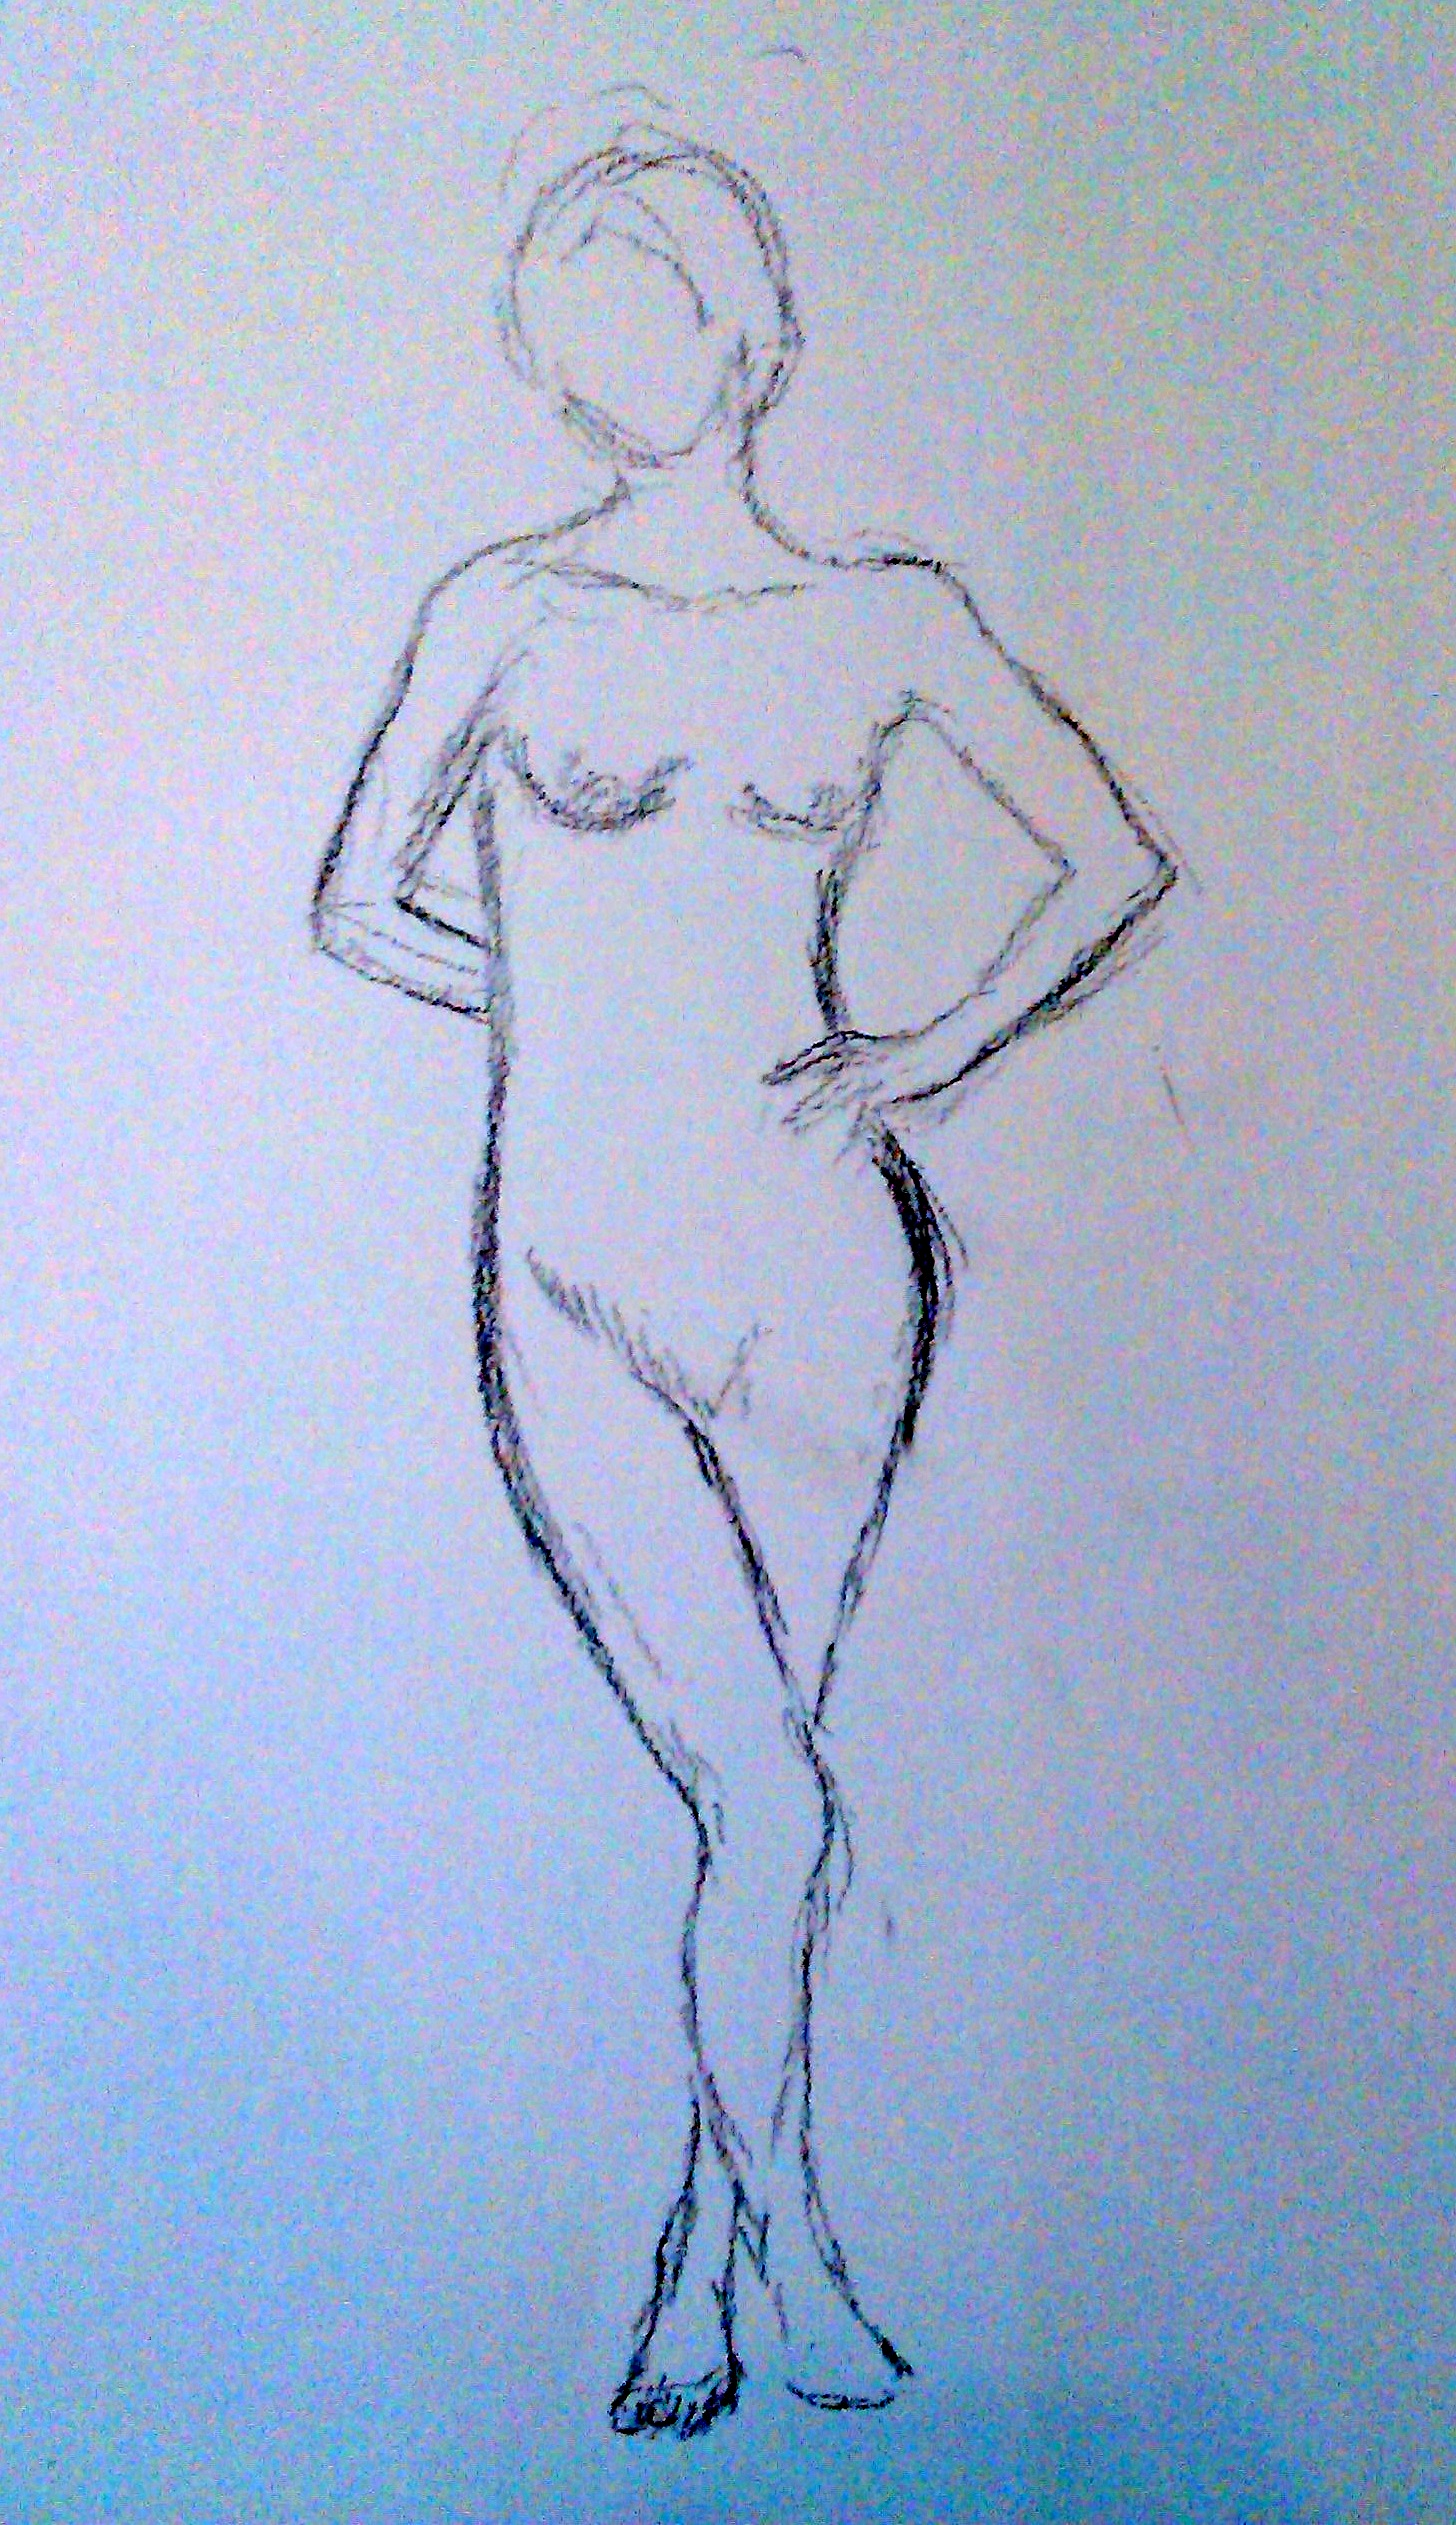 my 1st pose is about 10 minutes with a bit of a twist